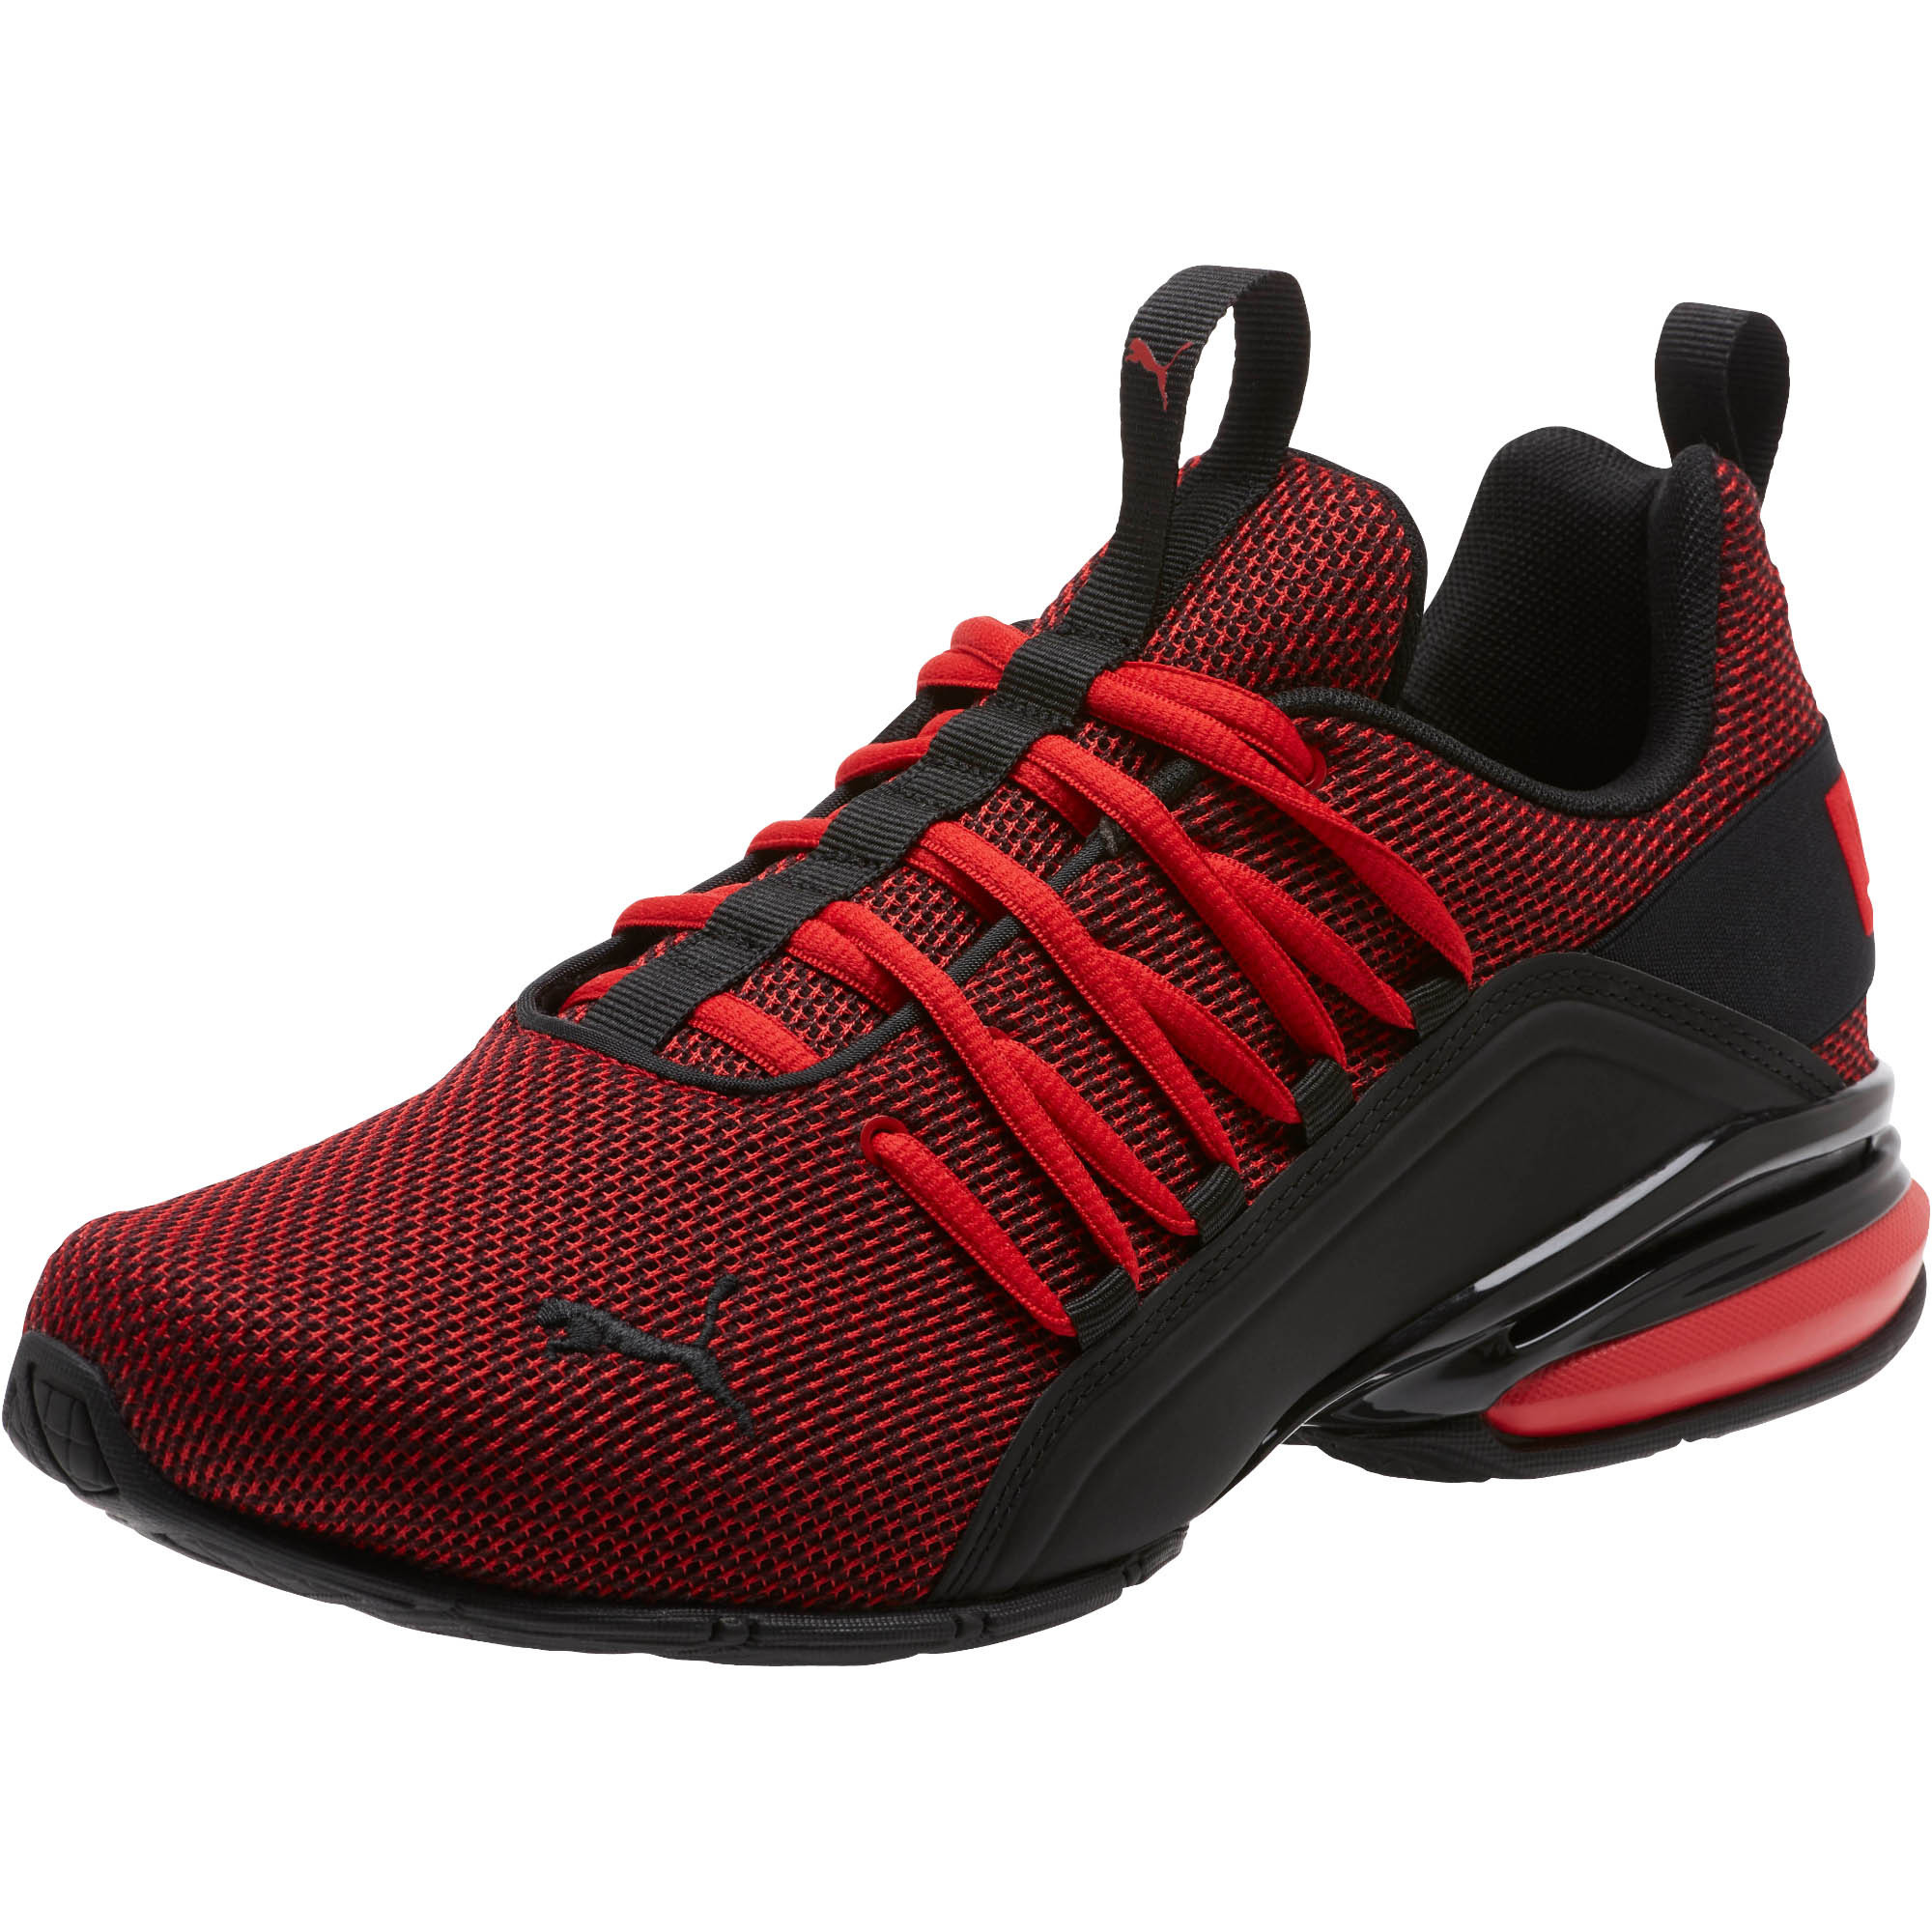 PUMA-Men-039-s-Axelion-Mesh-Training-Shoes thumbnail 4